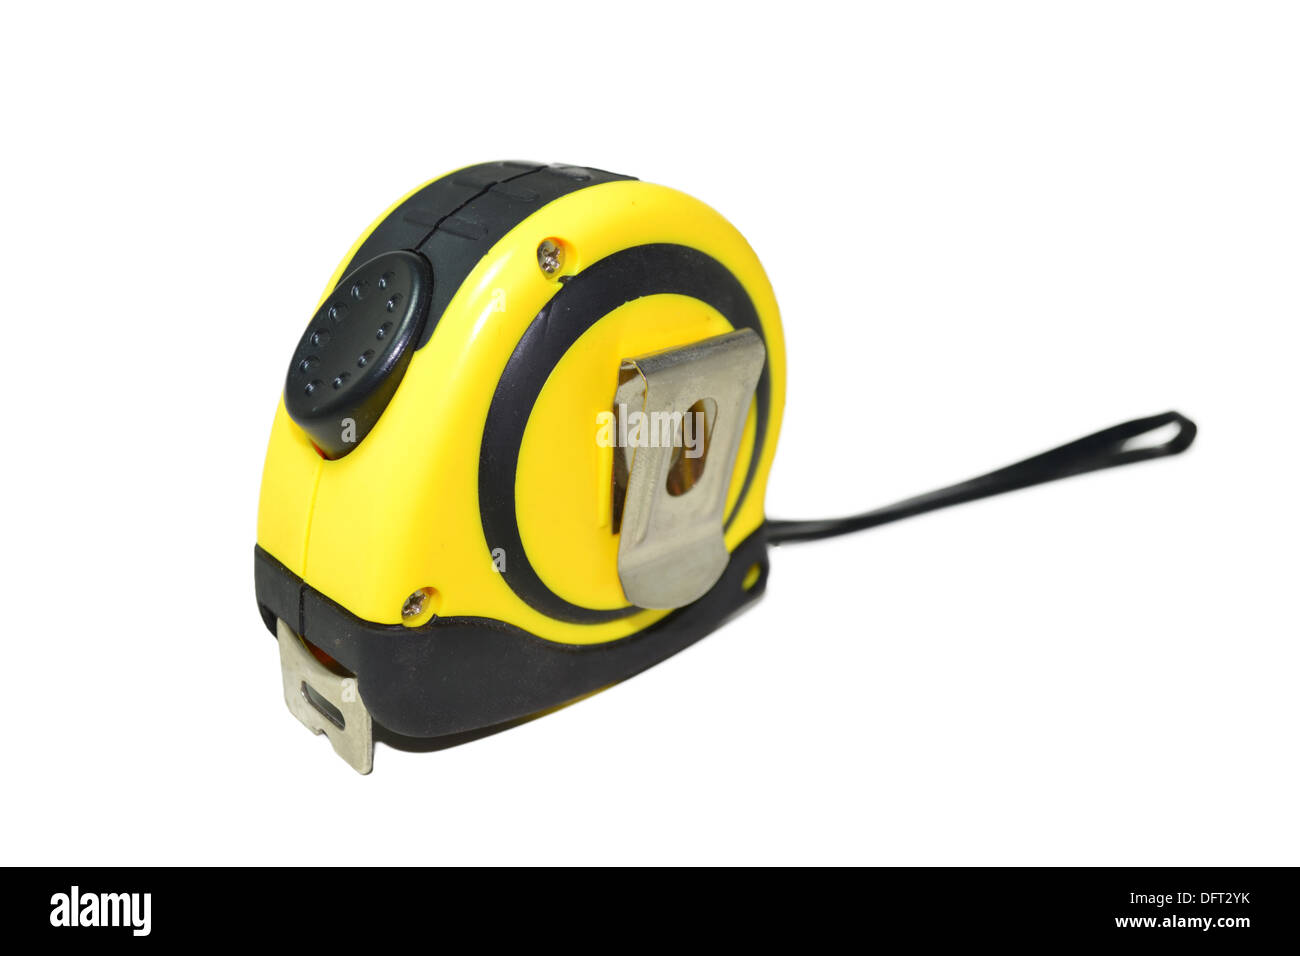 Yellow tape measure on white. - Stock Image